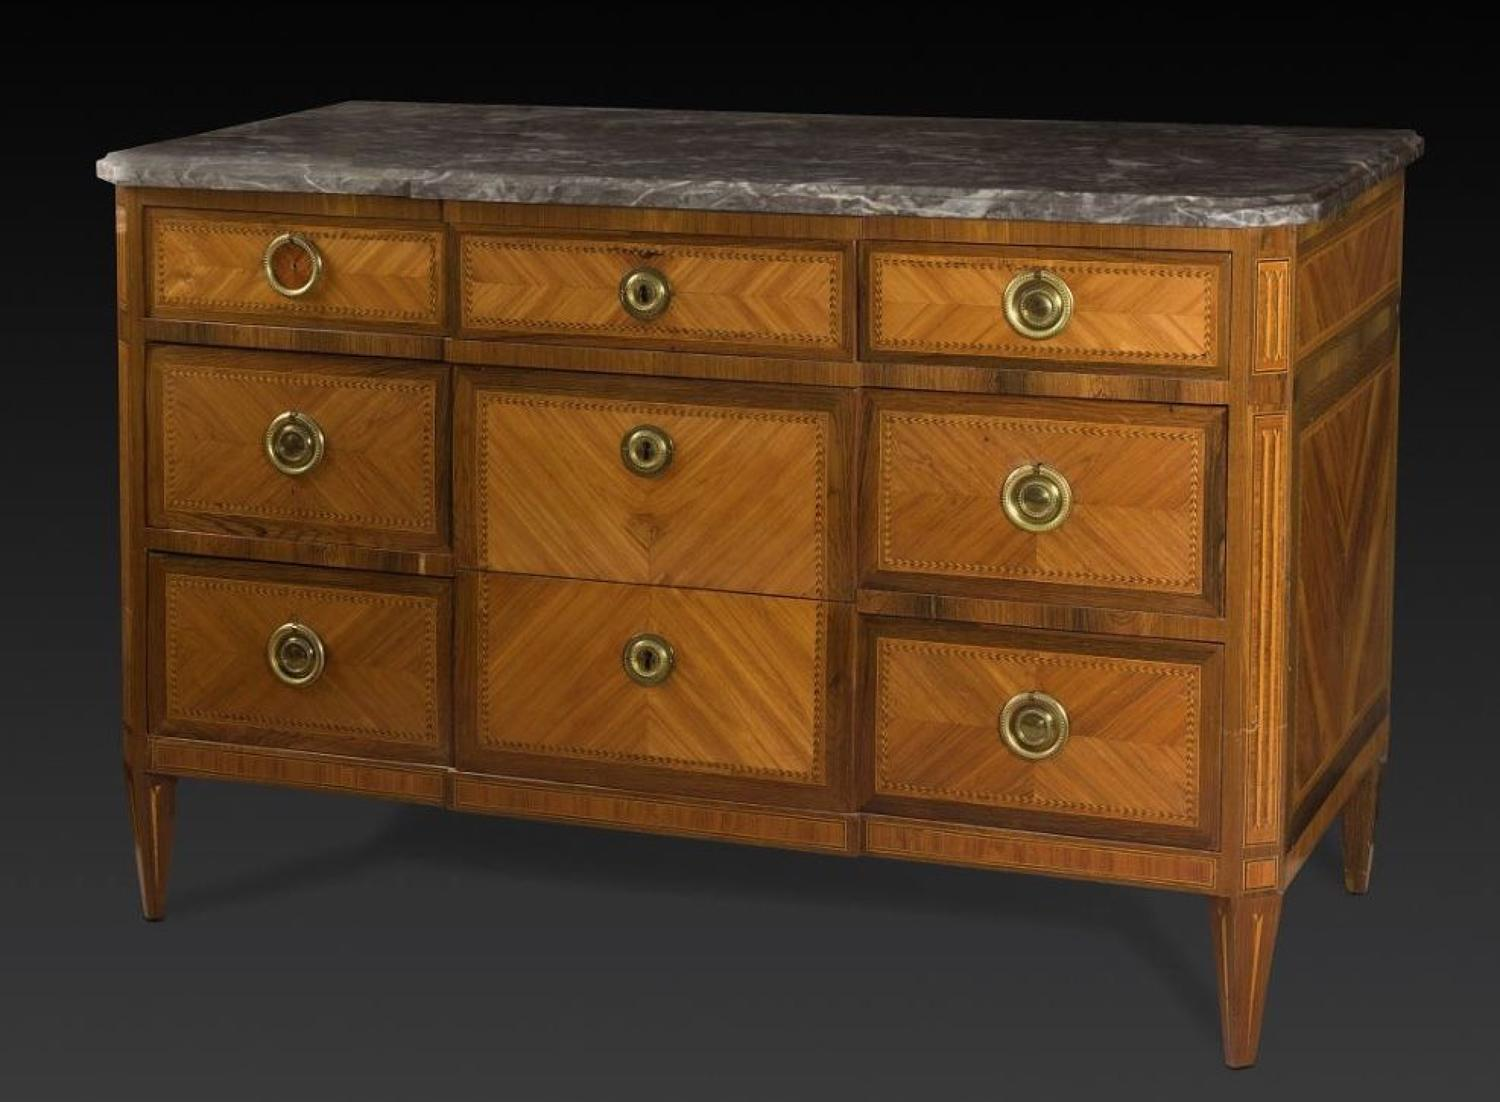 A LOUIS XVI PERIOD PARQUETRY COMMODE